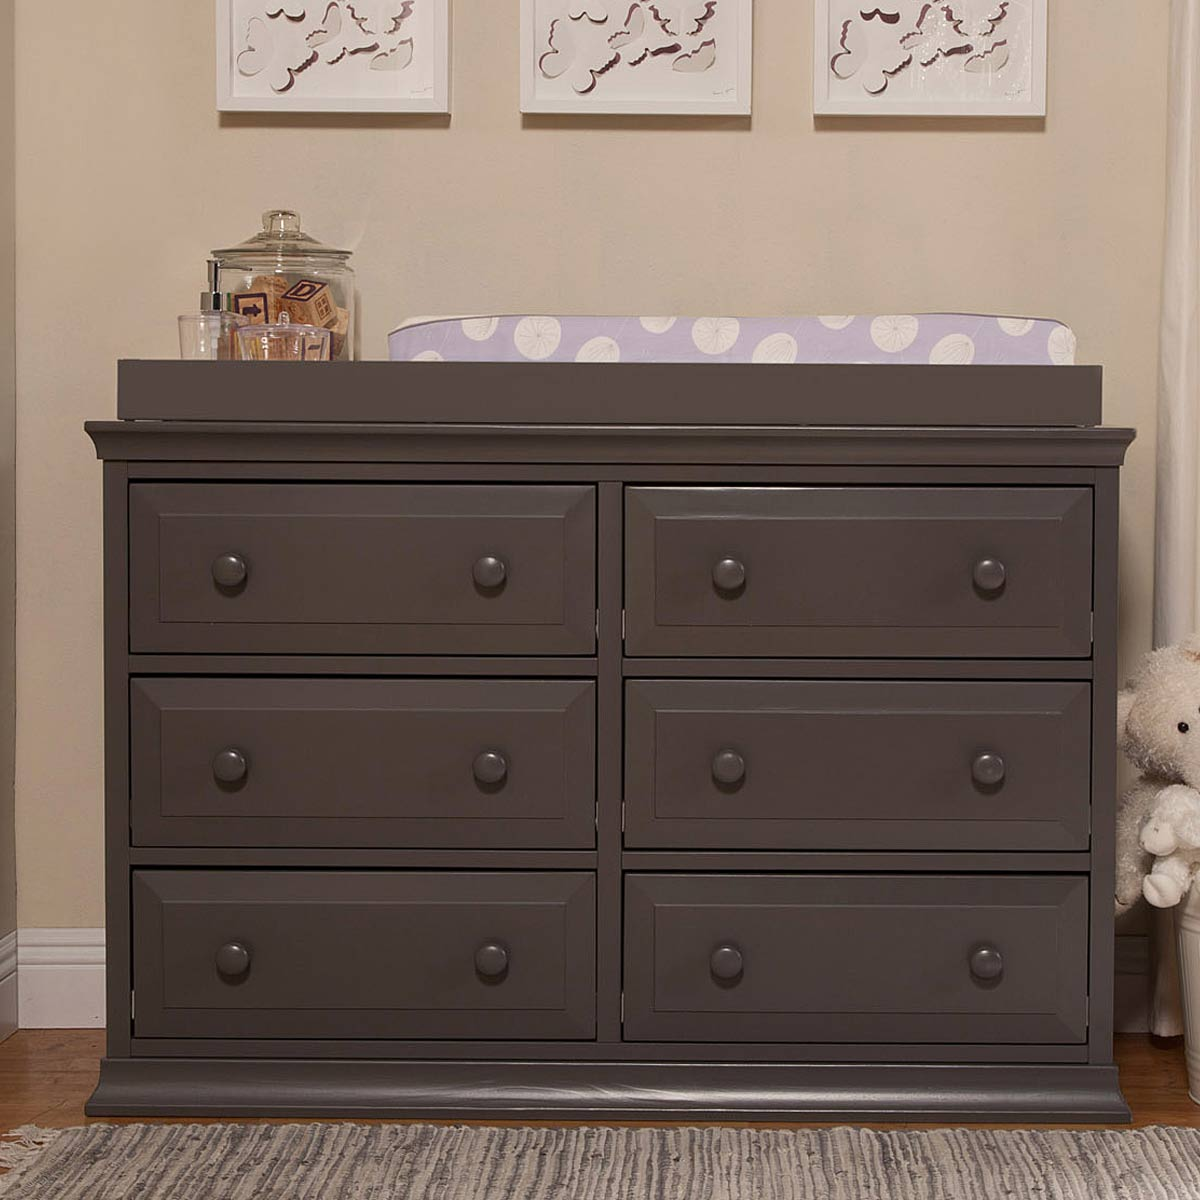 remodel mdb shopping your davinci furniture doubledresser baby to dresser for convert with momtrends nursery kids how